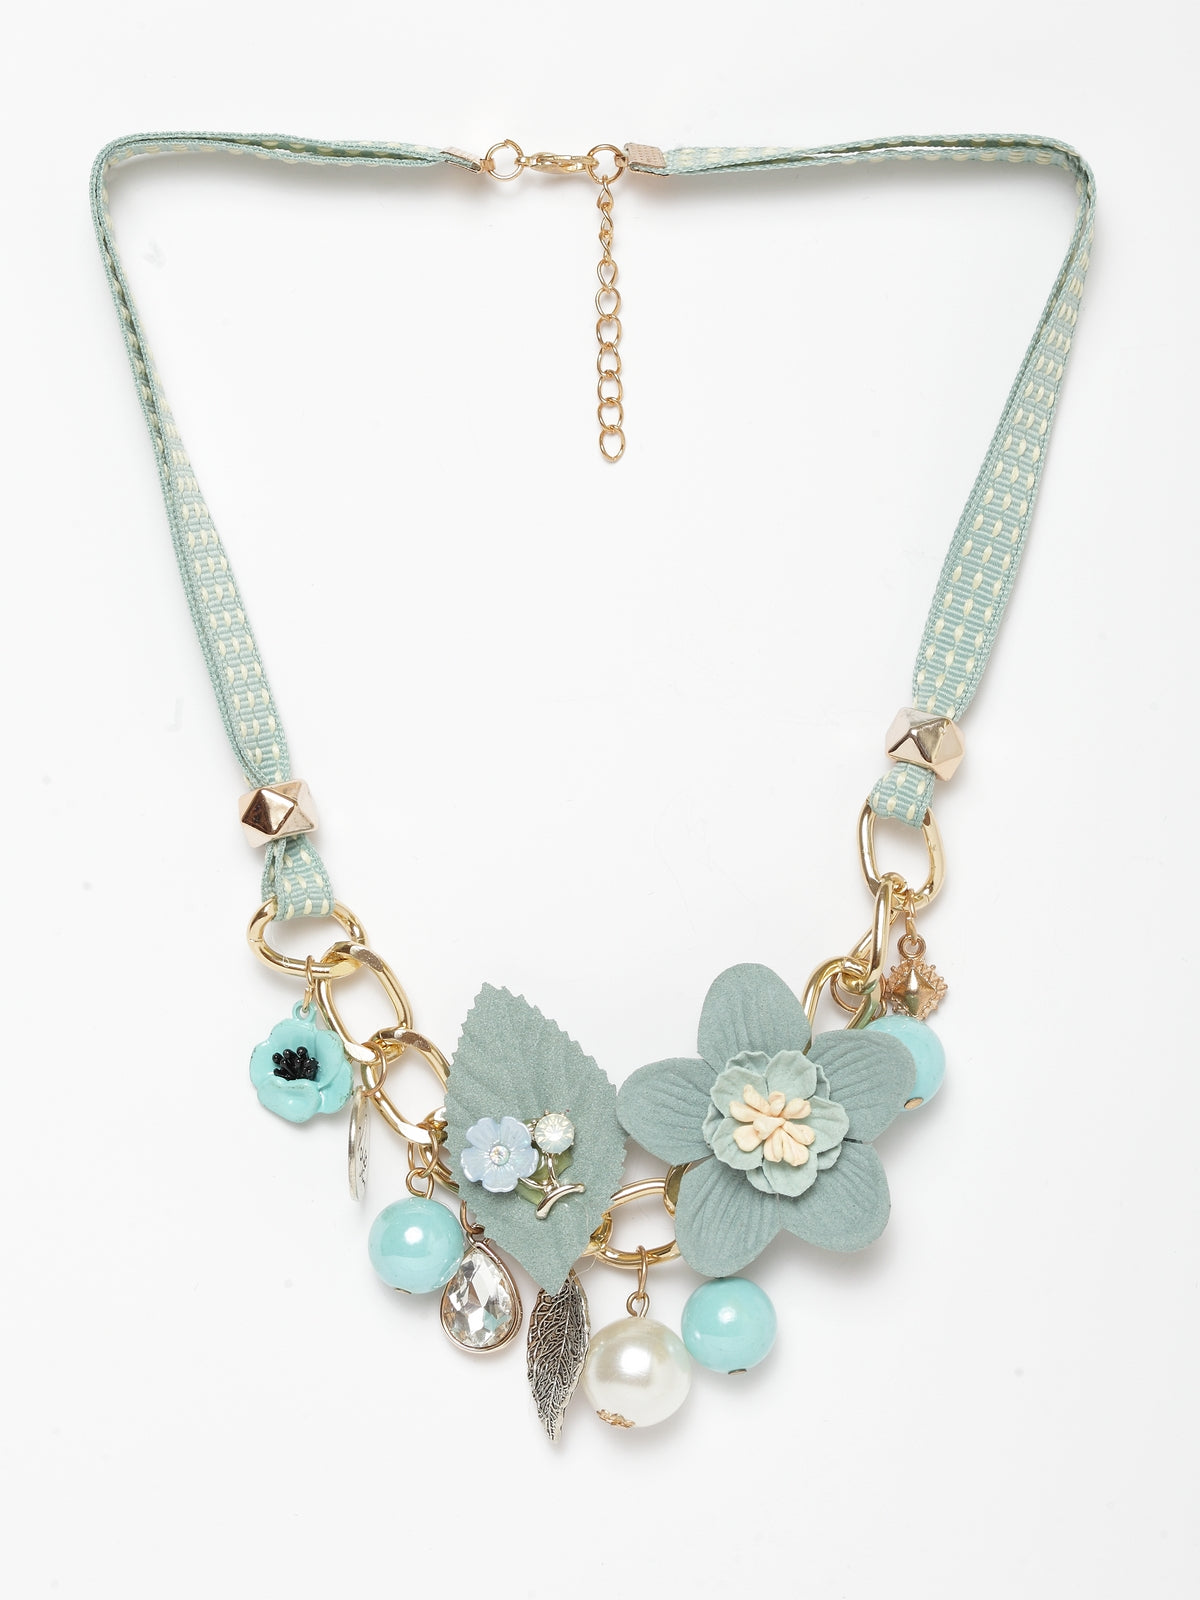 Avant-Garde Paris Floral Statement Choker Necklace